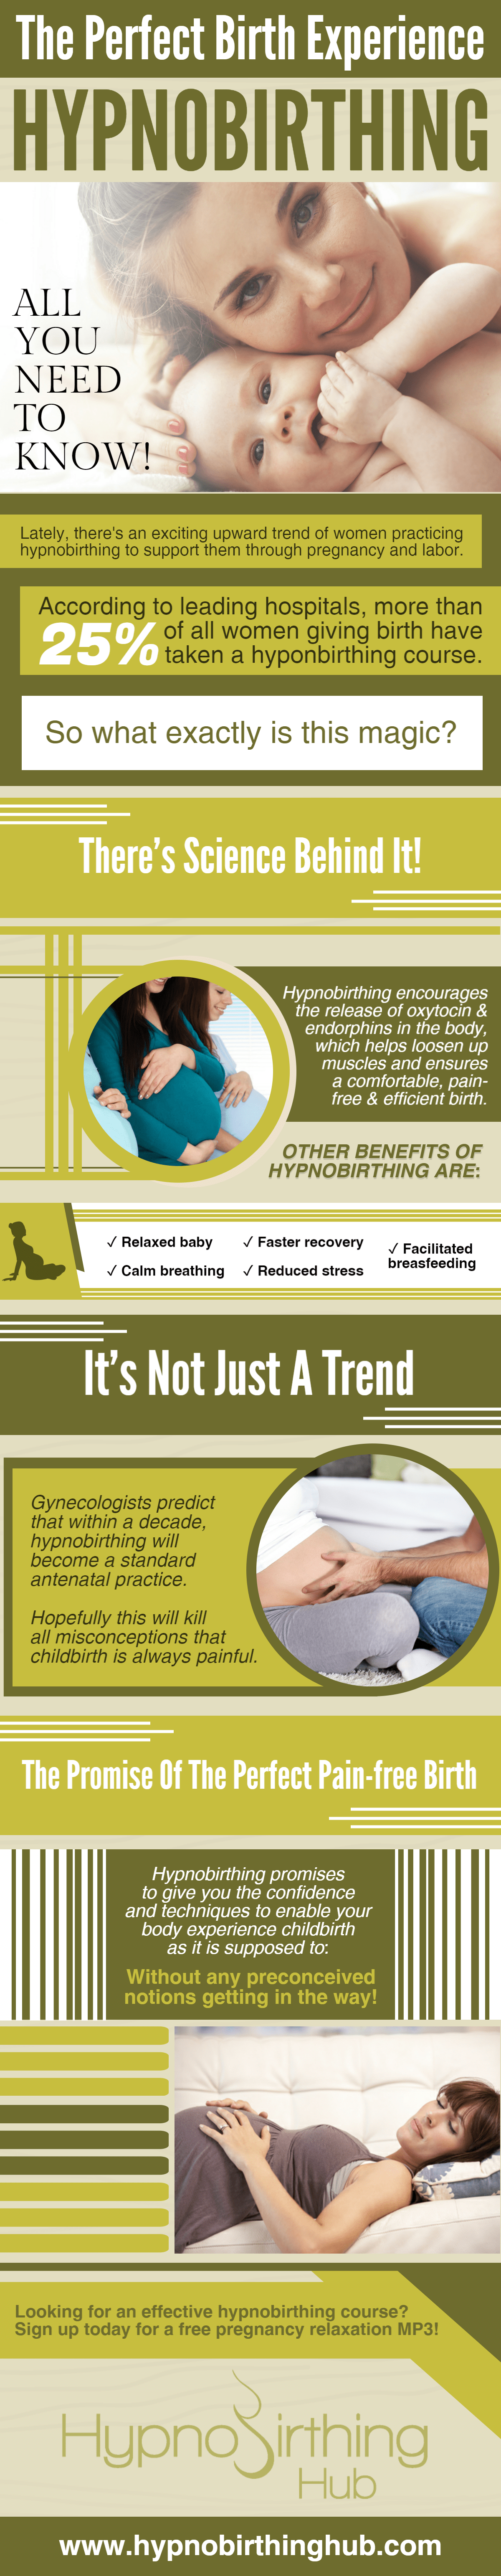 The Perfect Birth Experience Hypnobirthing Infographic